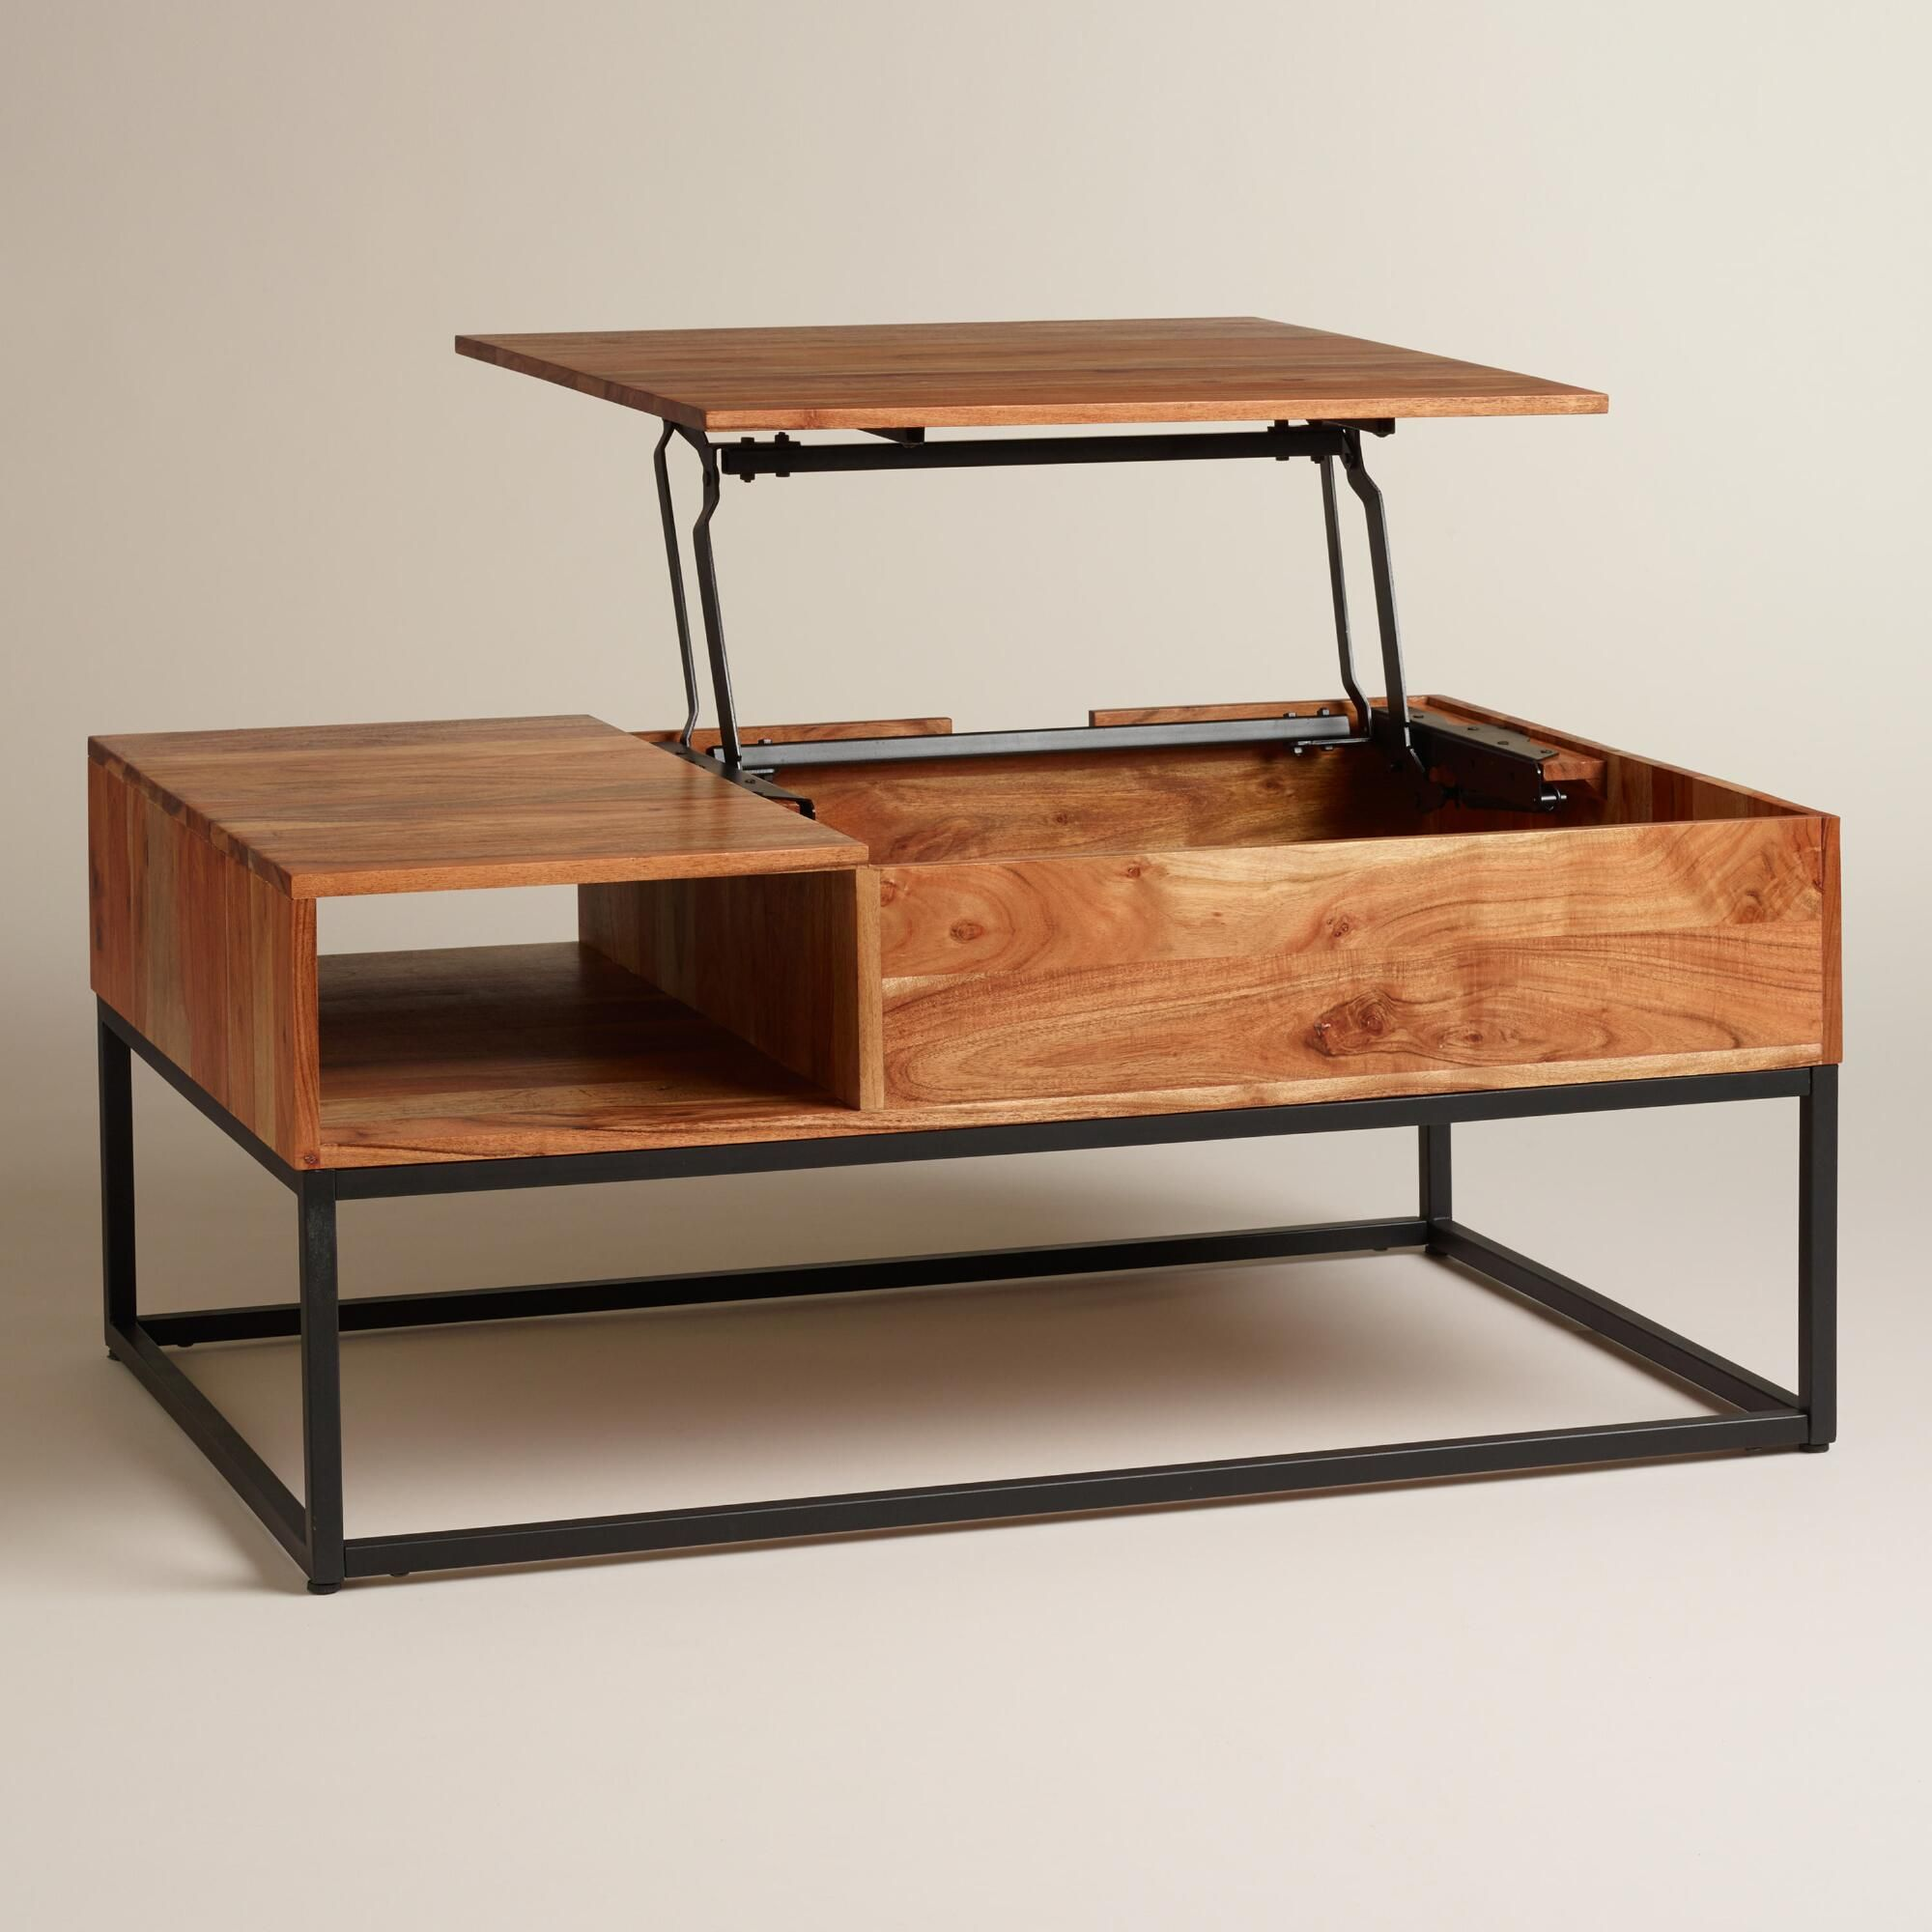 Espresso Coffee Table With Storage: Wood Silas Storage Coffee Table